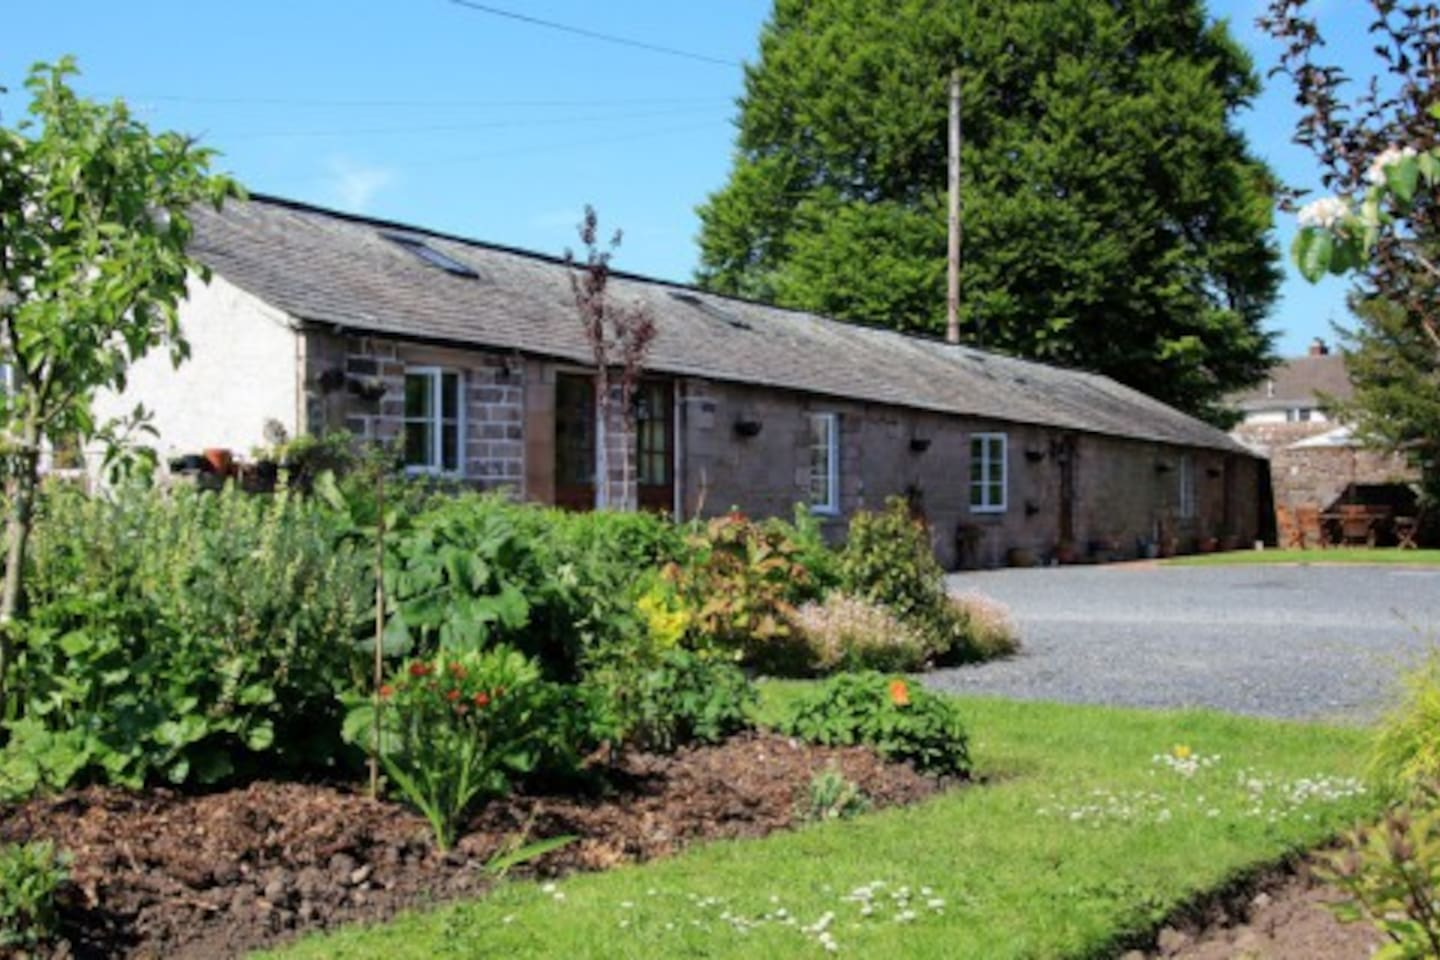 Set in the grounds of the award winning Gardens of Stafford House, which itself nestles amidst the grounds of Greystoke Castle, Pennine Lodge is the perfect base to explore the beautiful Lake District.